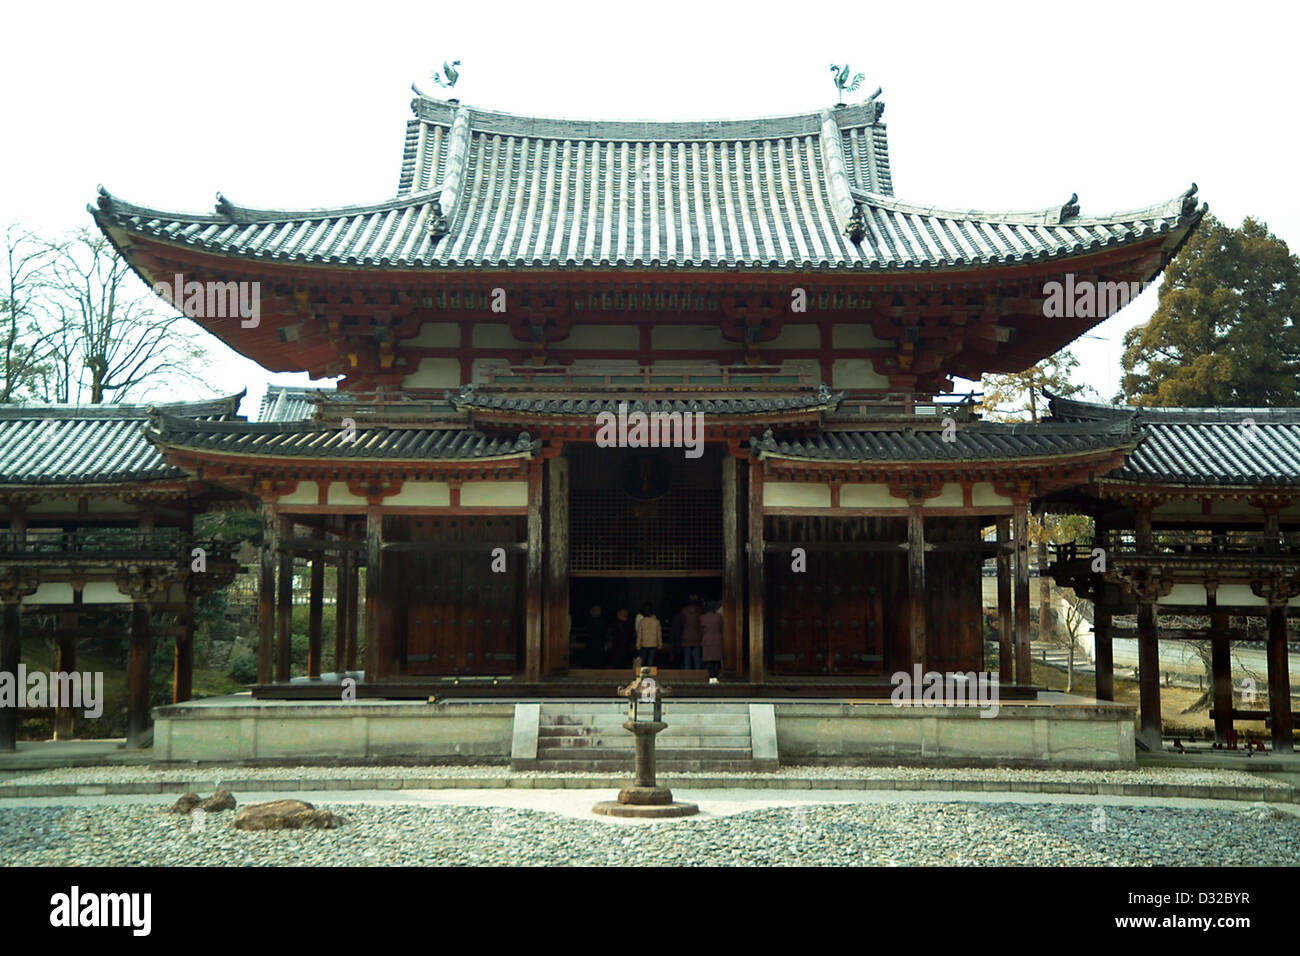 Phoenix Hall of the Byodo-in, a temple in the city of Uji, Kyoto prefecture - Stock Image